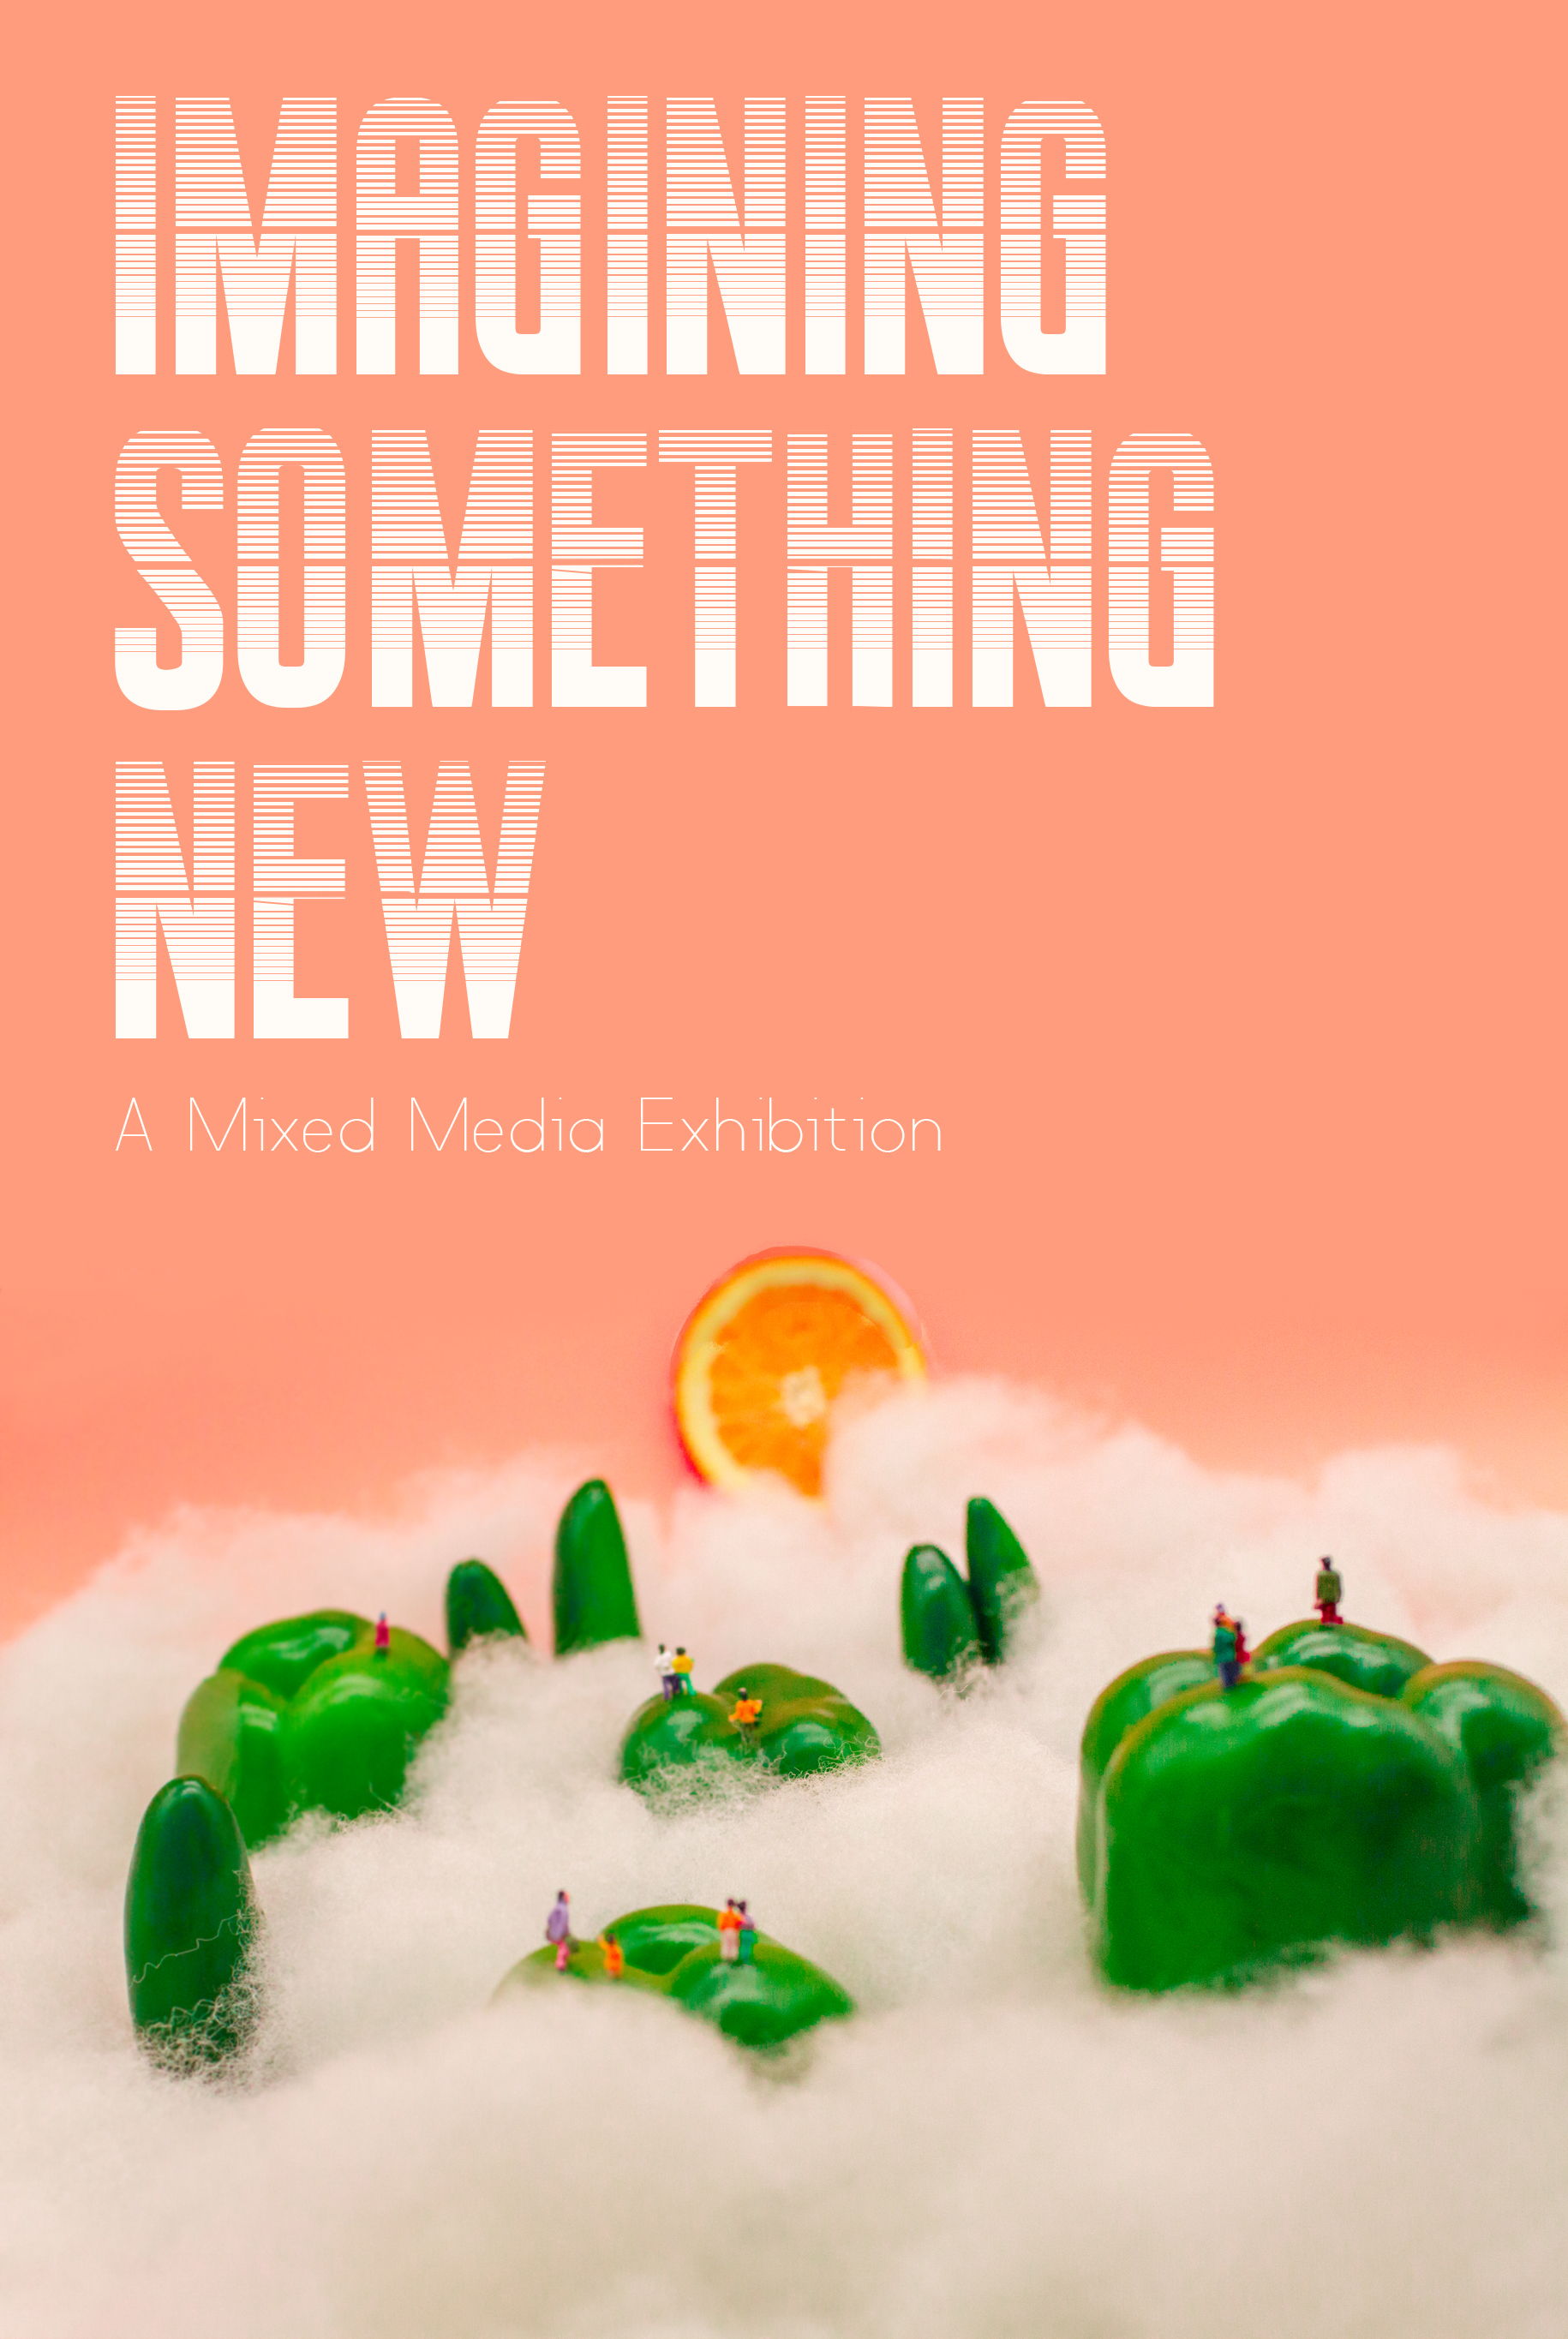 Imagining Something New: A Mixed Media Exhibition